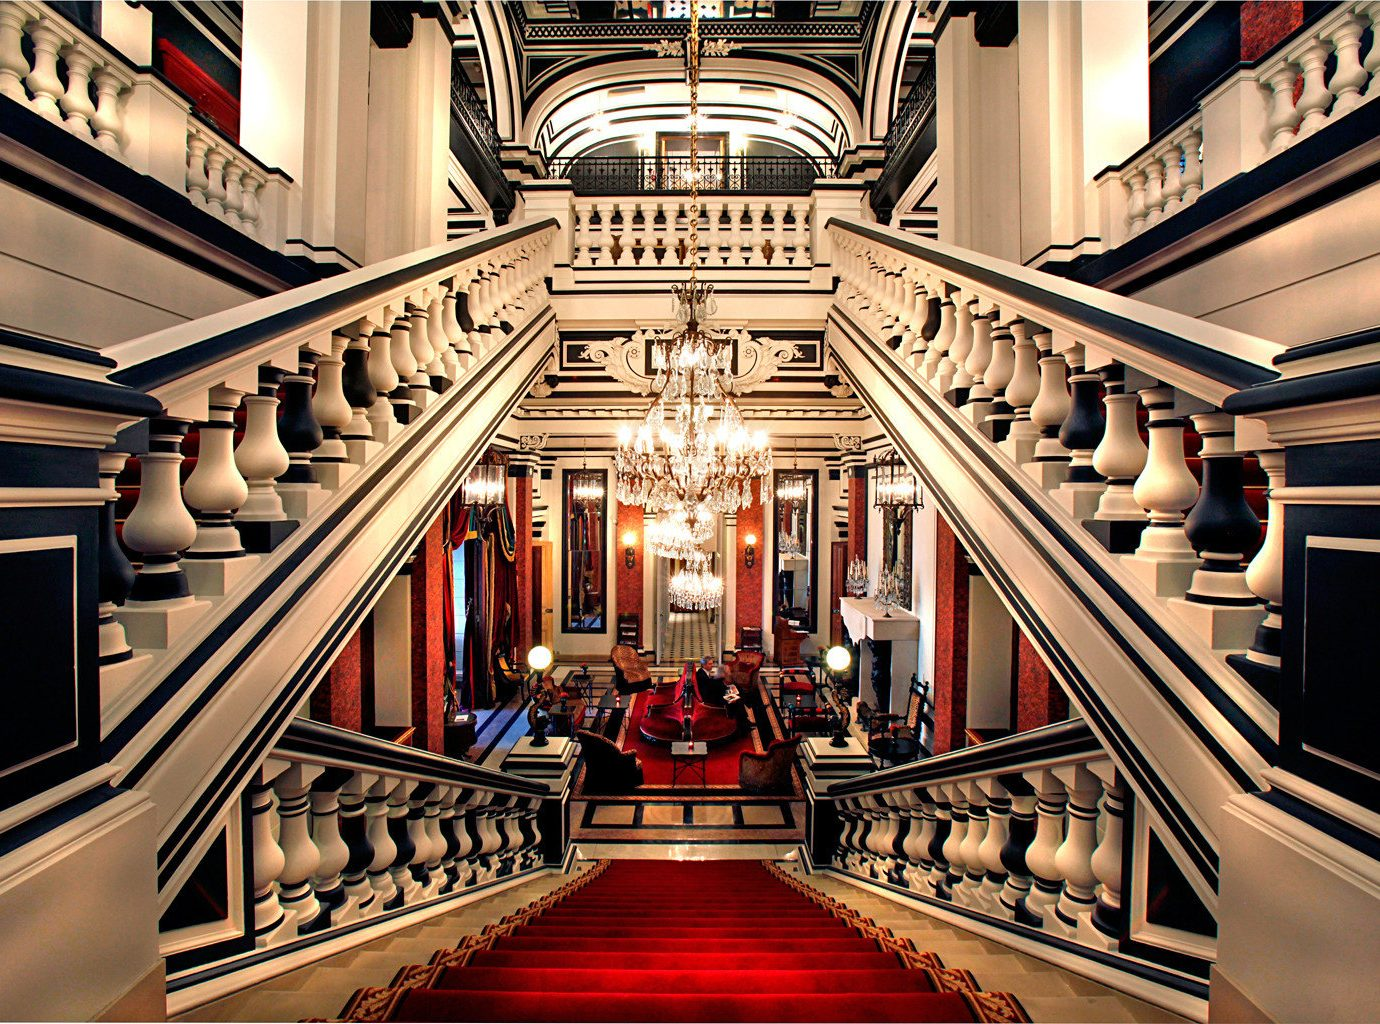 City Elegant France Historic Hotels Lobby Paris Romantic indoor symmetry hall